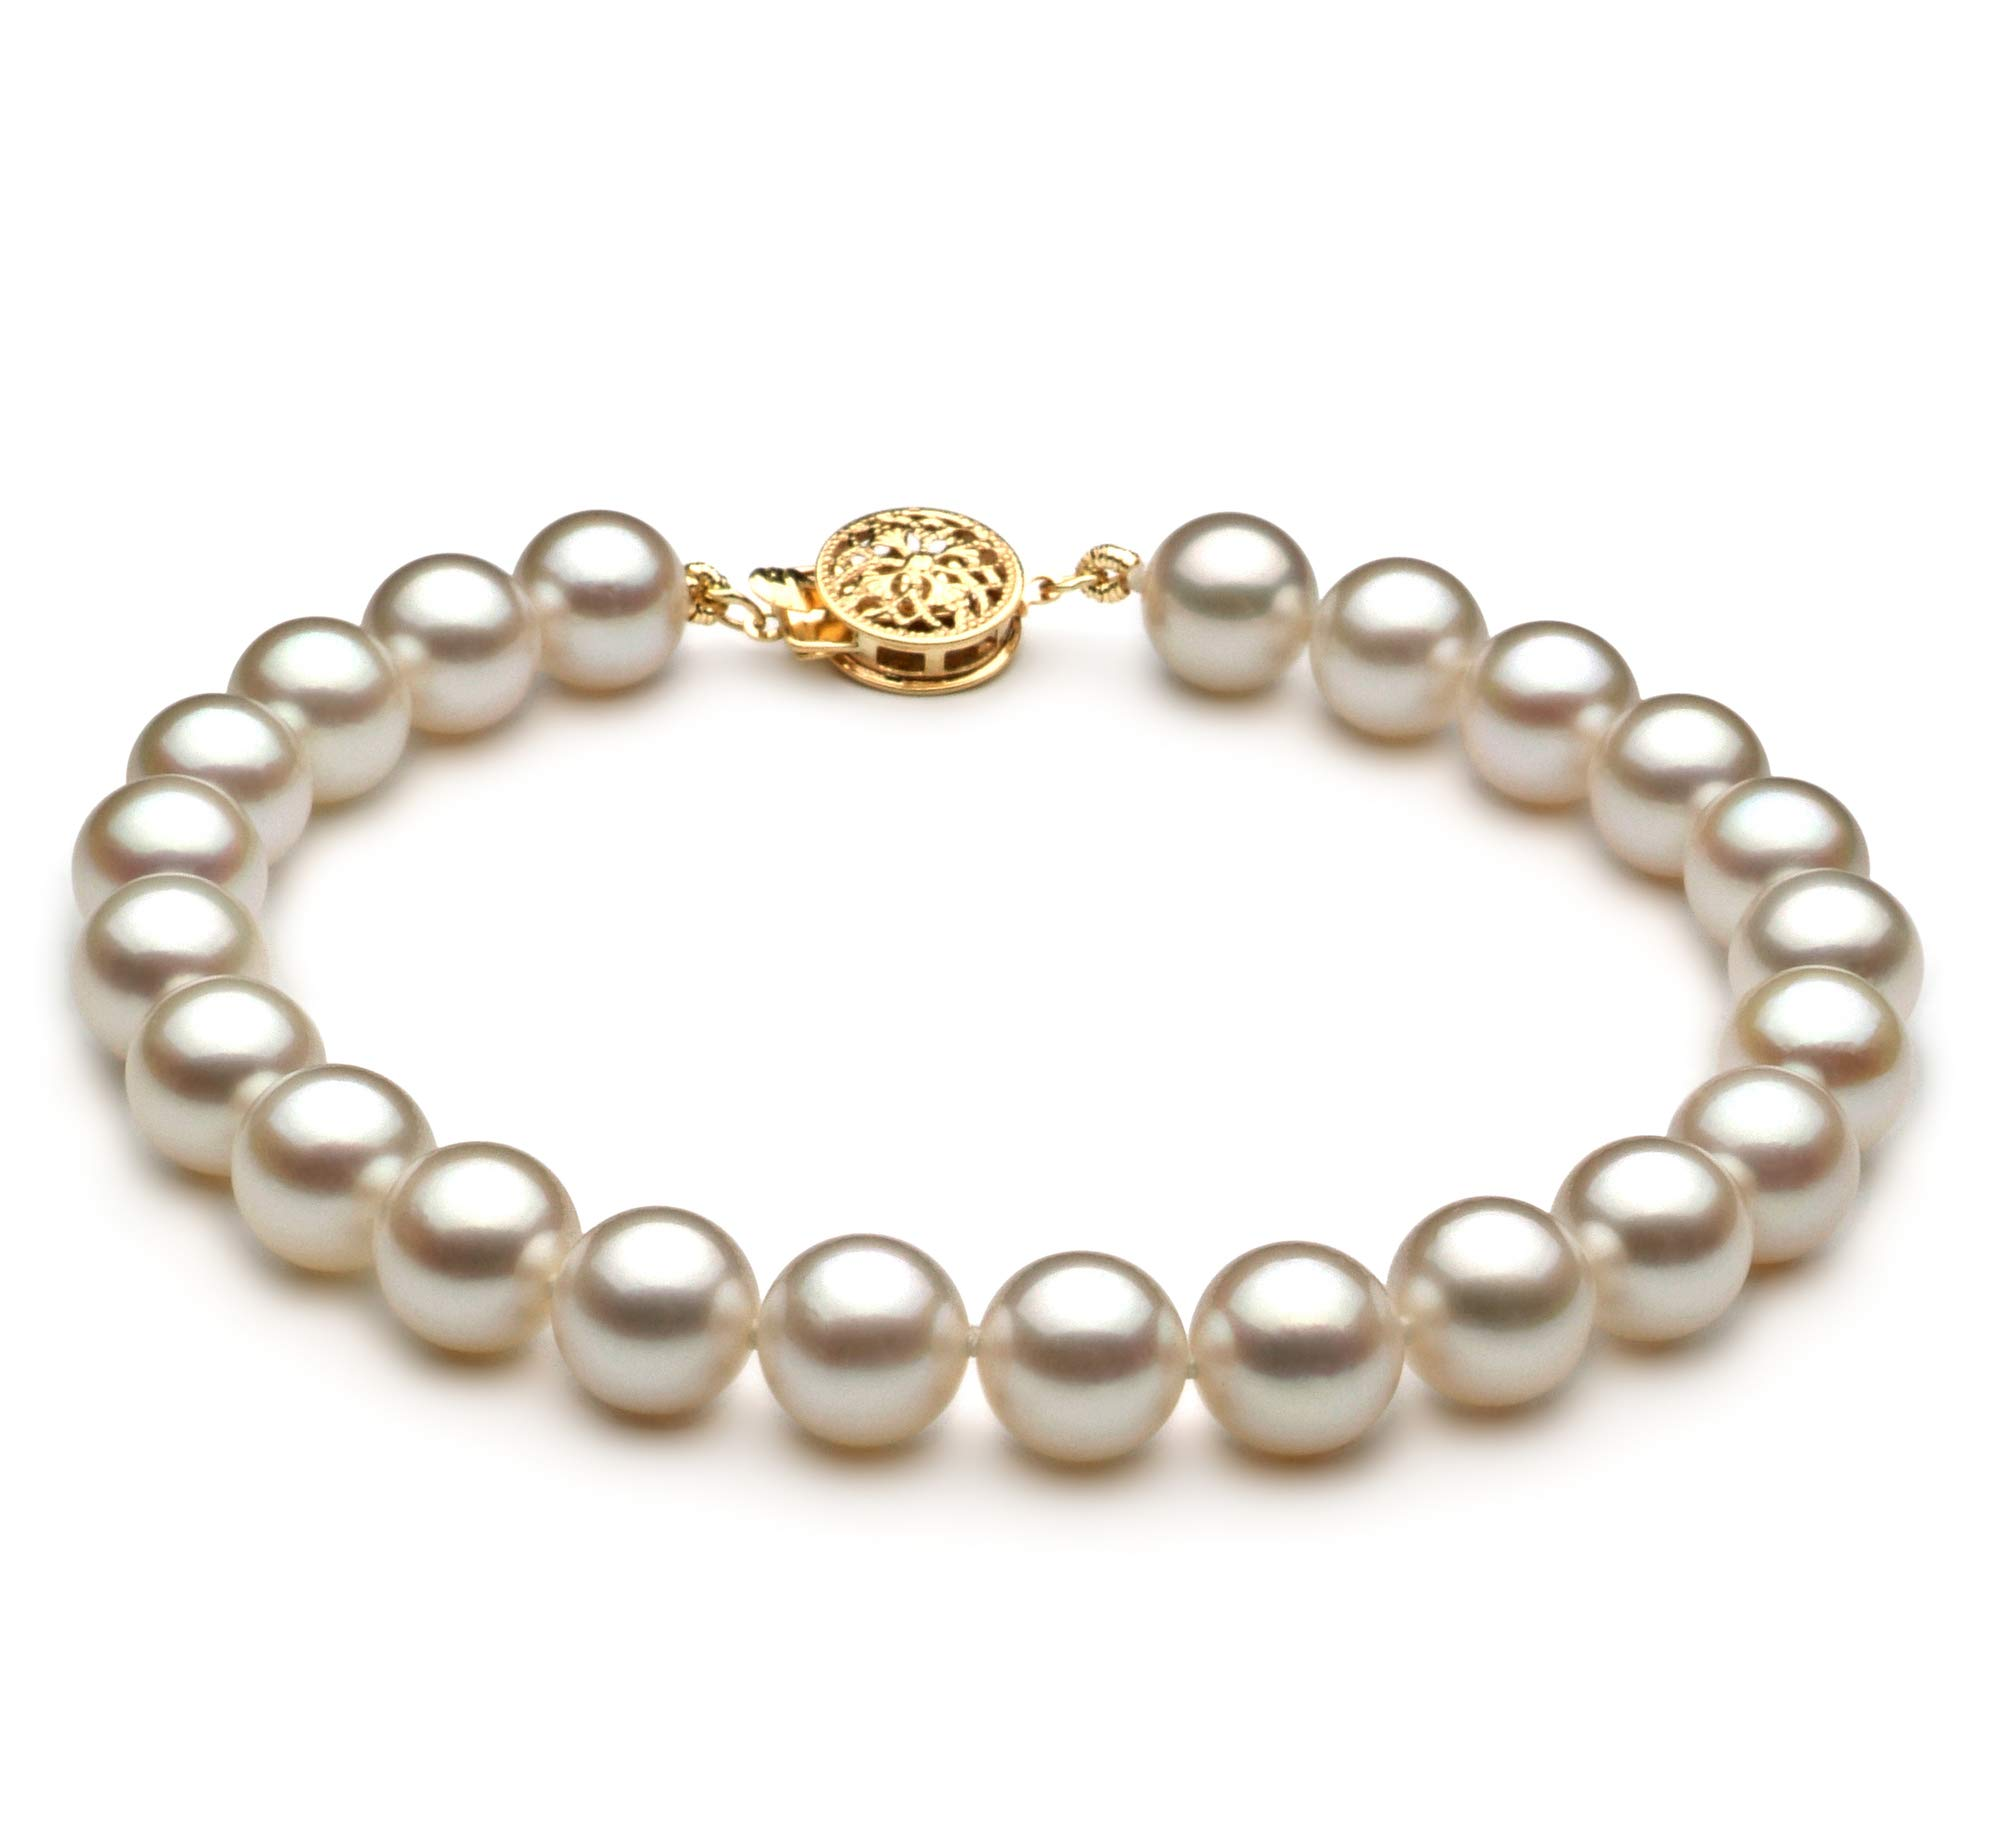 White 7.5-8mm AAA Quality Japanese Akoya Cultured Pearl Bracelet for Women-7 in Length